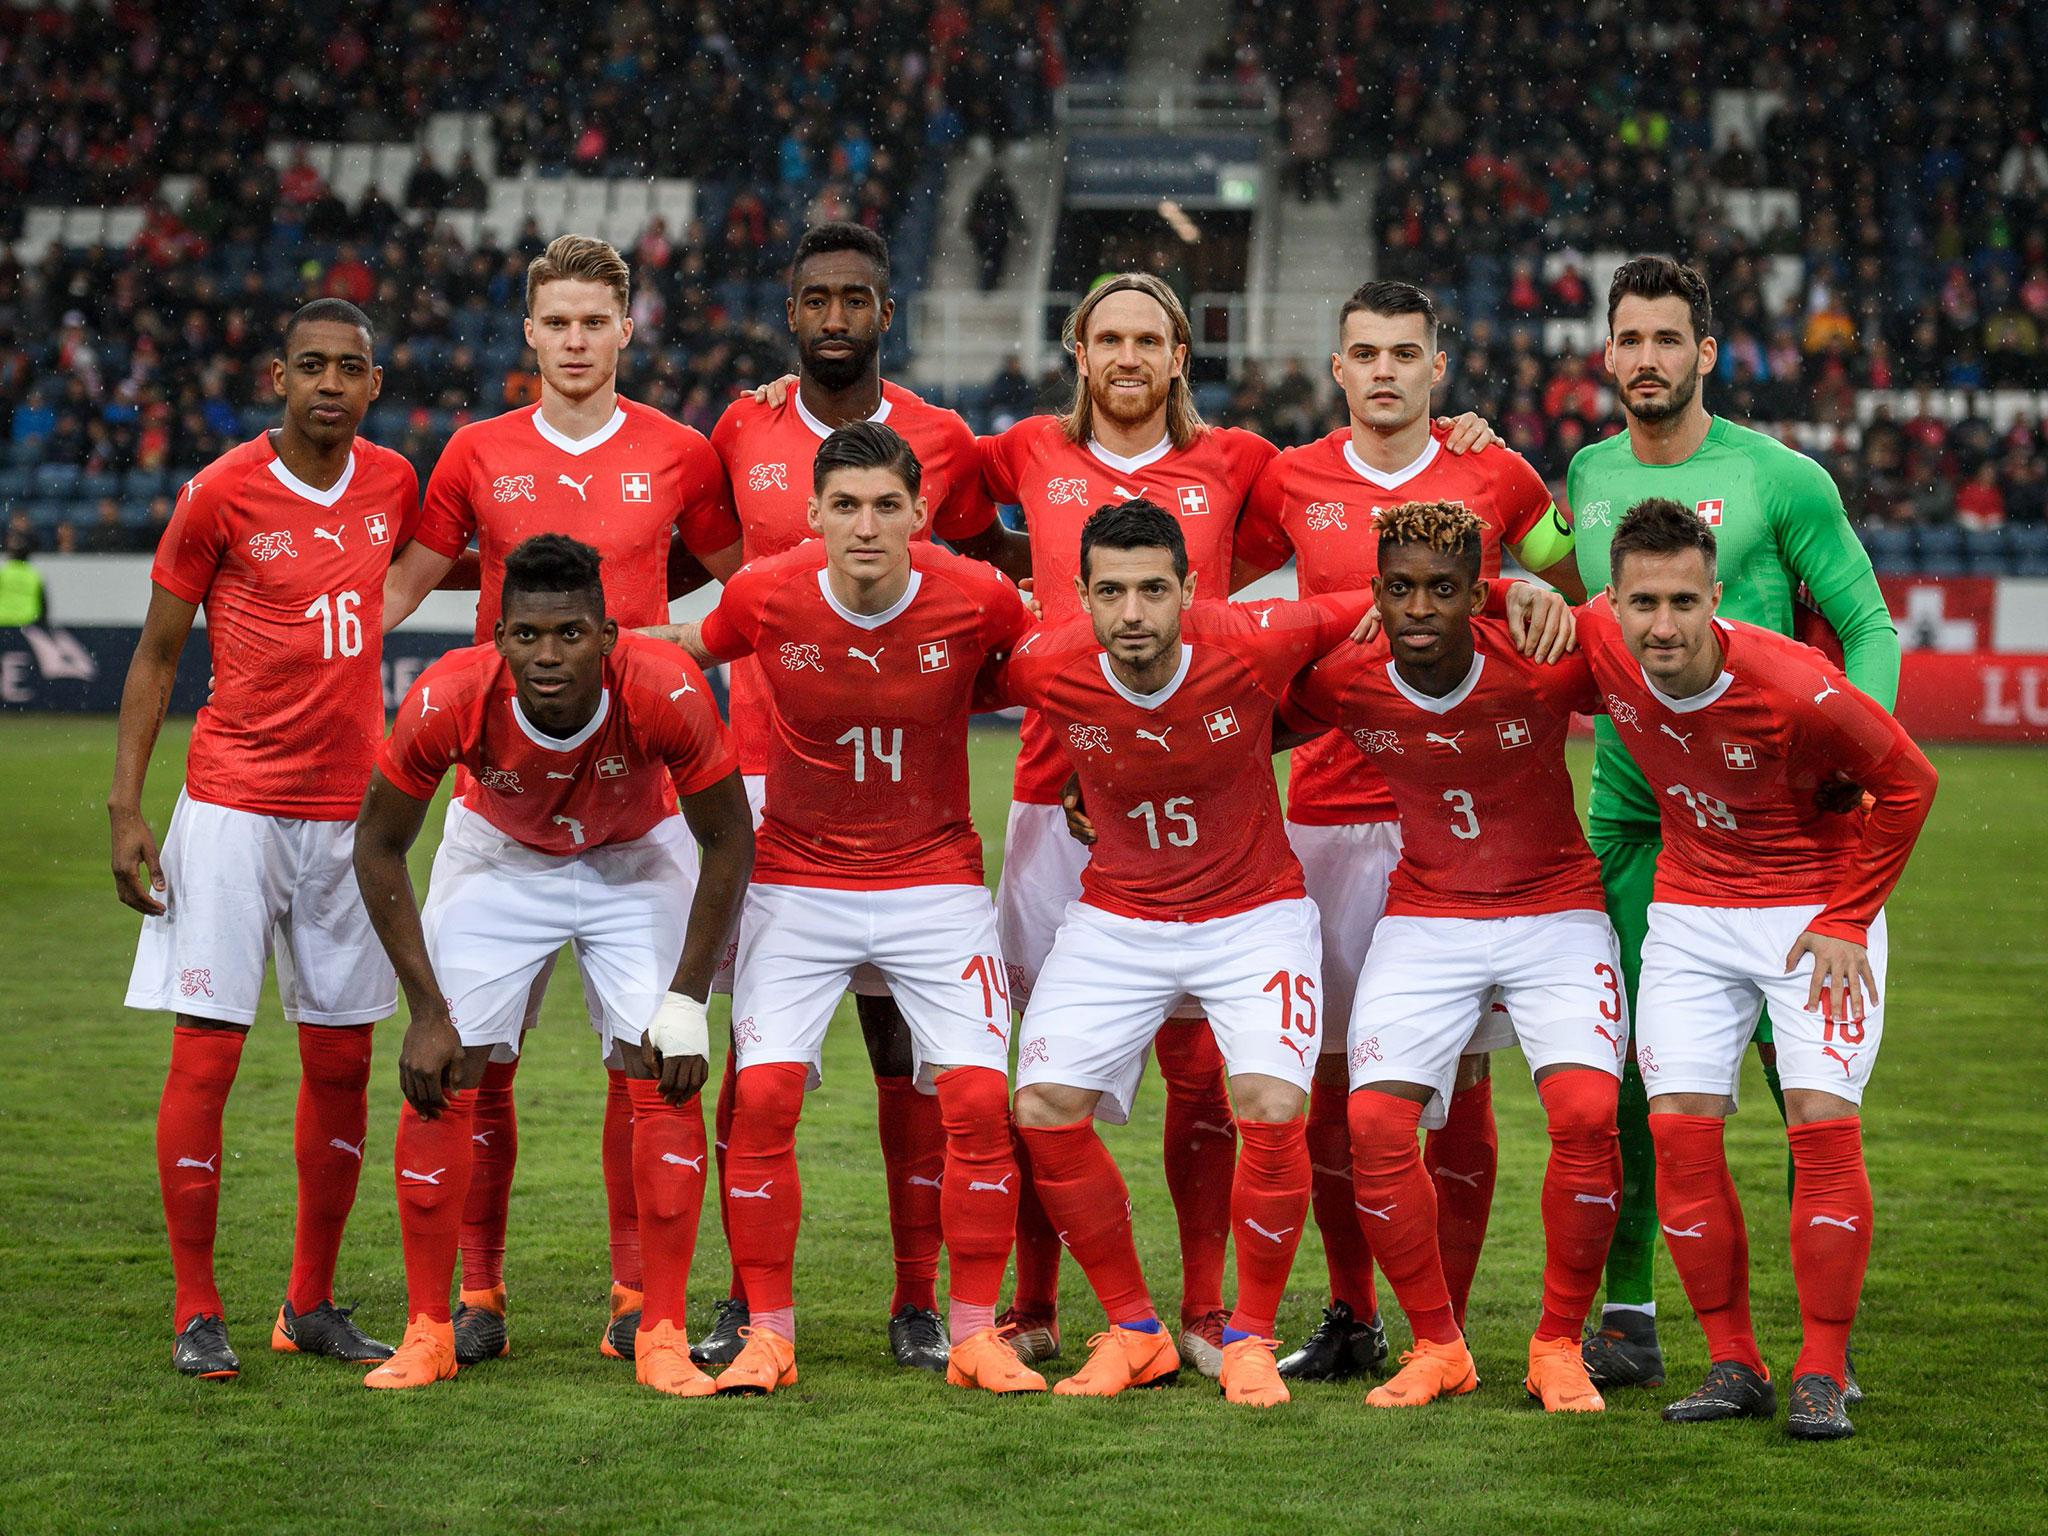 4ff7b97410a Switzerland World Cup squad guide: Full fixtures, group, ones to watch,  odds and more | The Independent